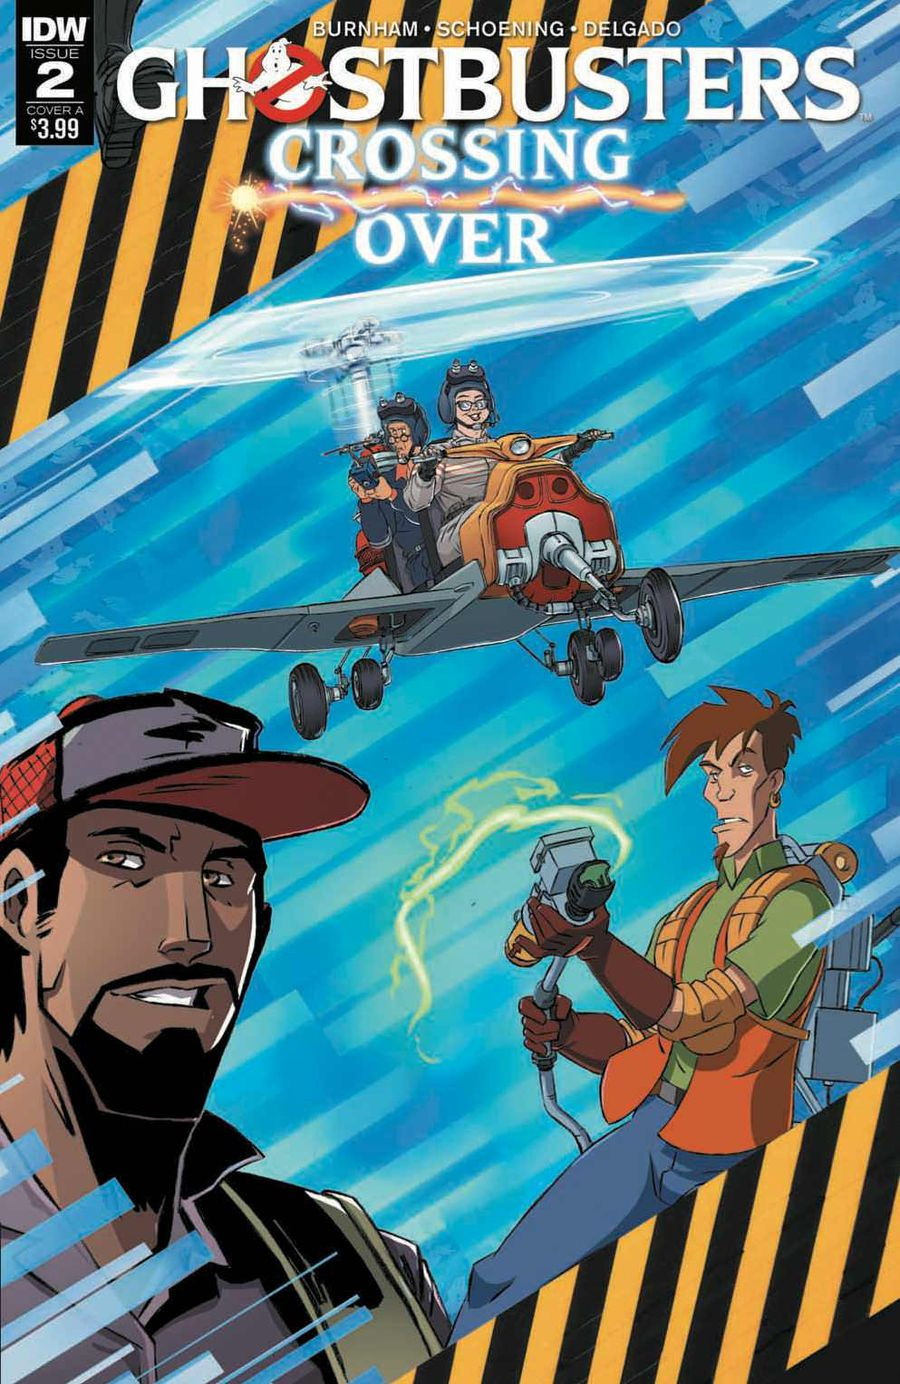 Ghostbusters: Crossing Over Issue 2 Cover